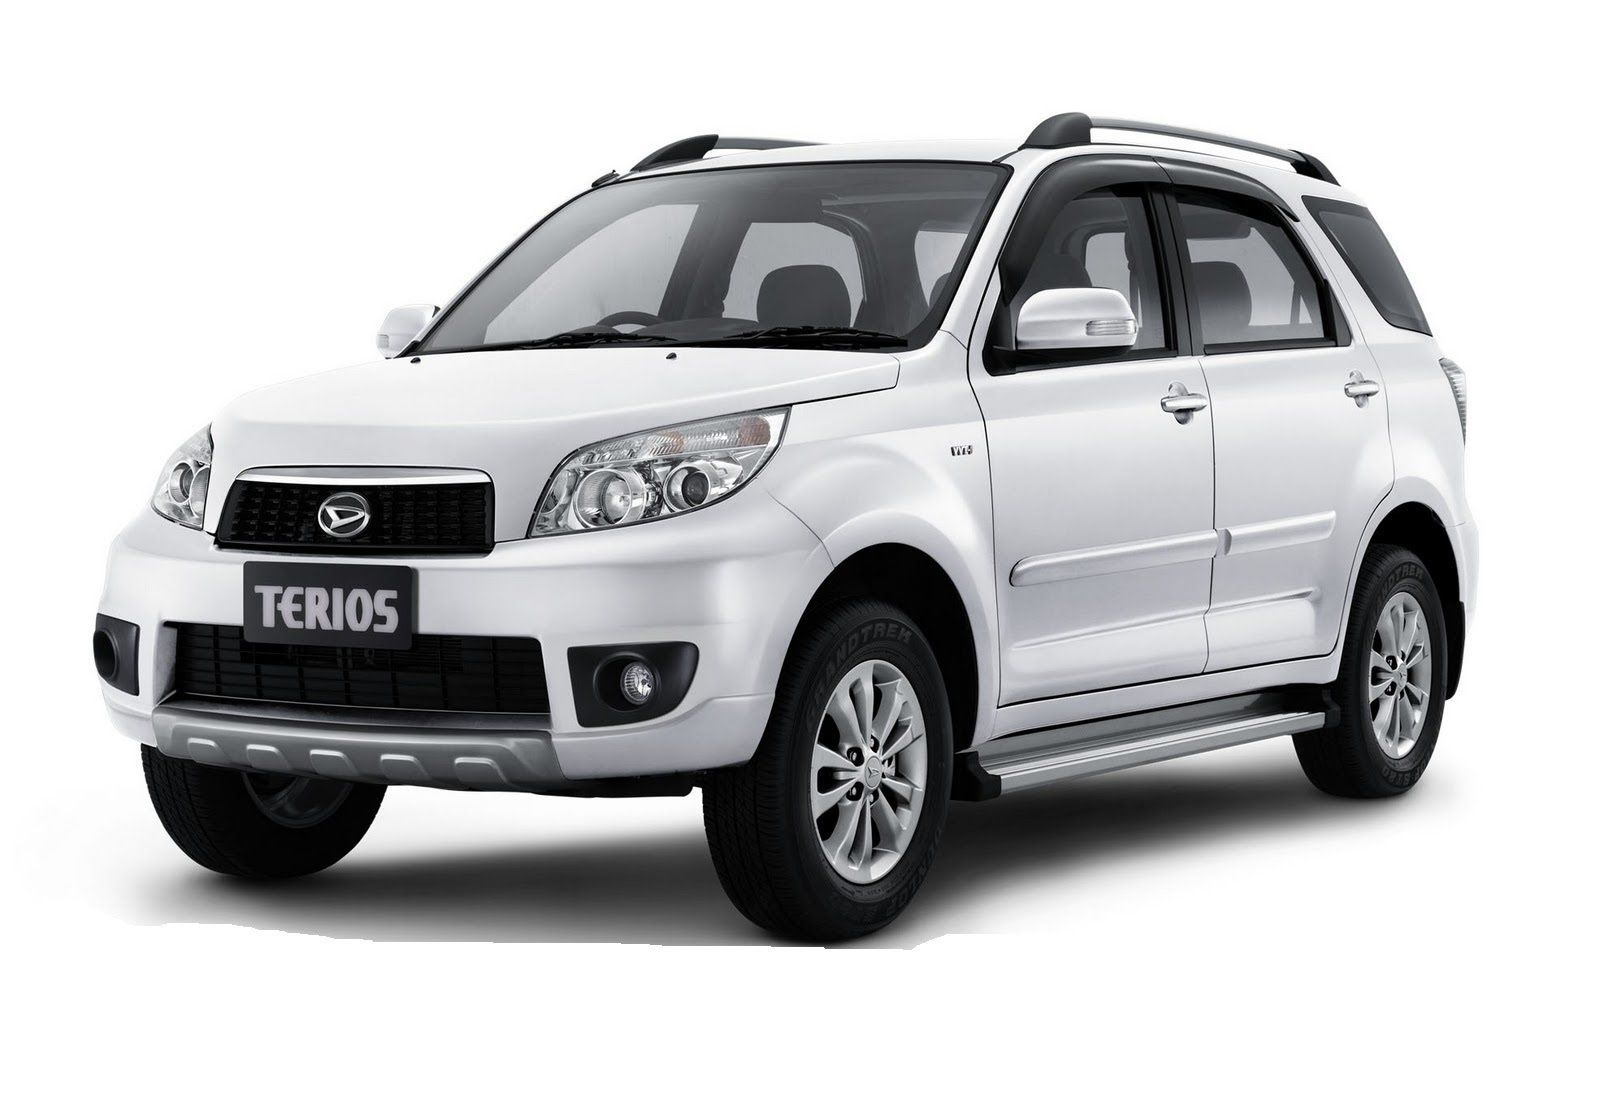 hight resolution of the daihatsu terios is a mini suv first released in 1997 by the japanese car manufacturer daihatsu